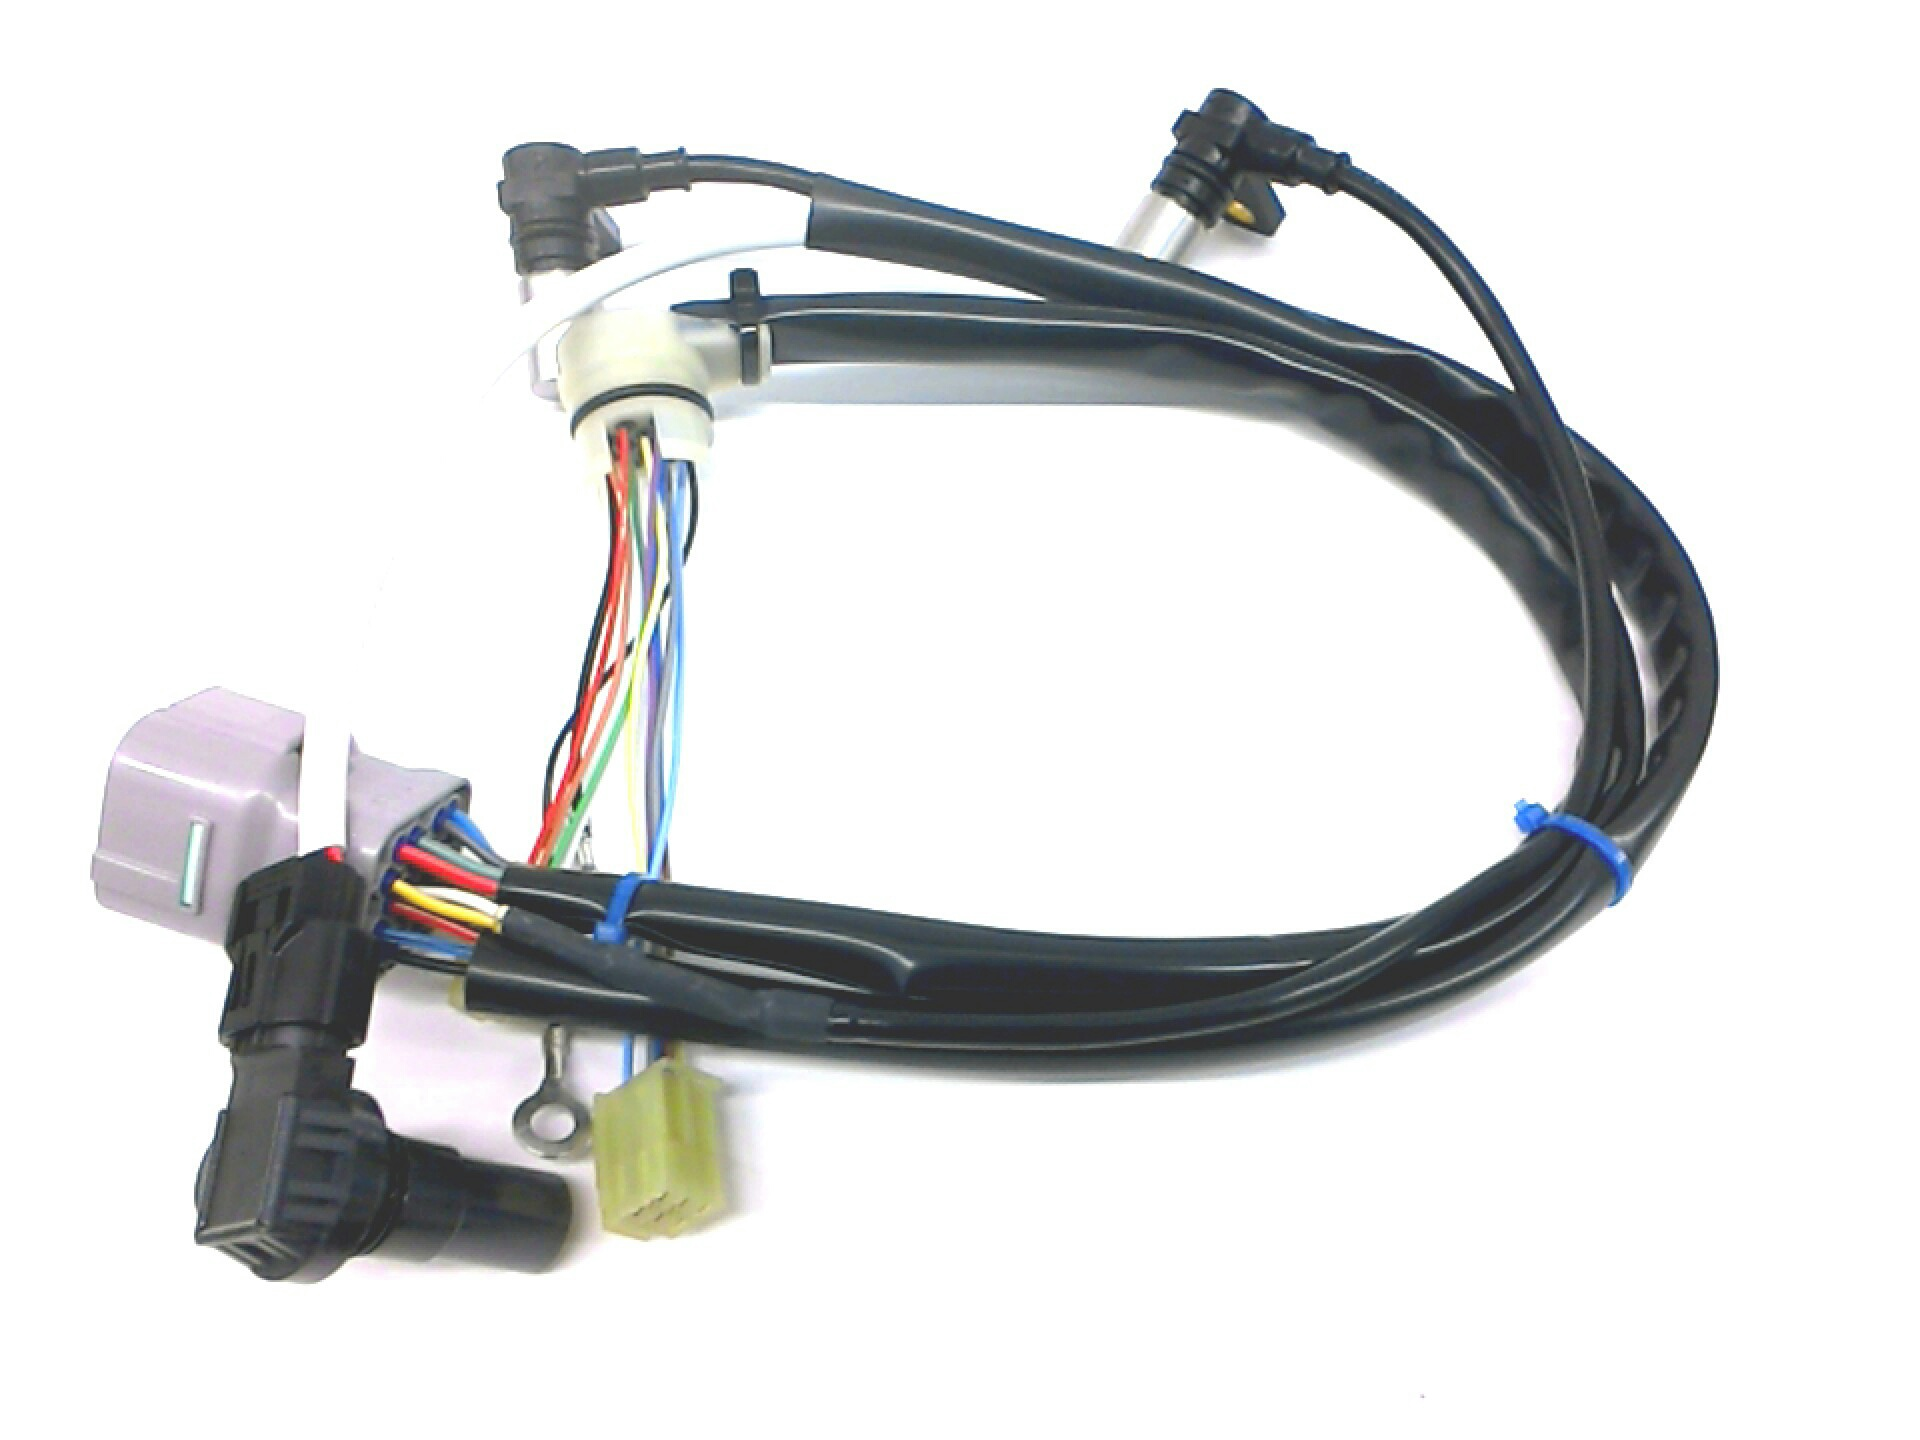 Subaru Impreza Wiring Diagram Together With 1998 Subaru Legacy